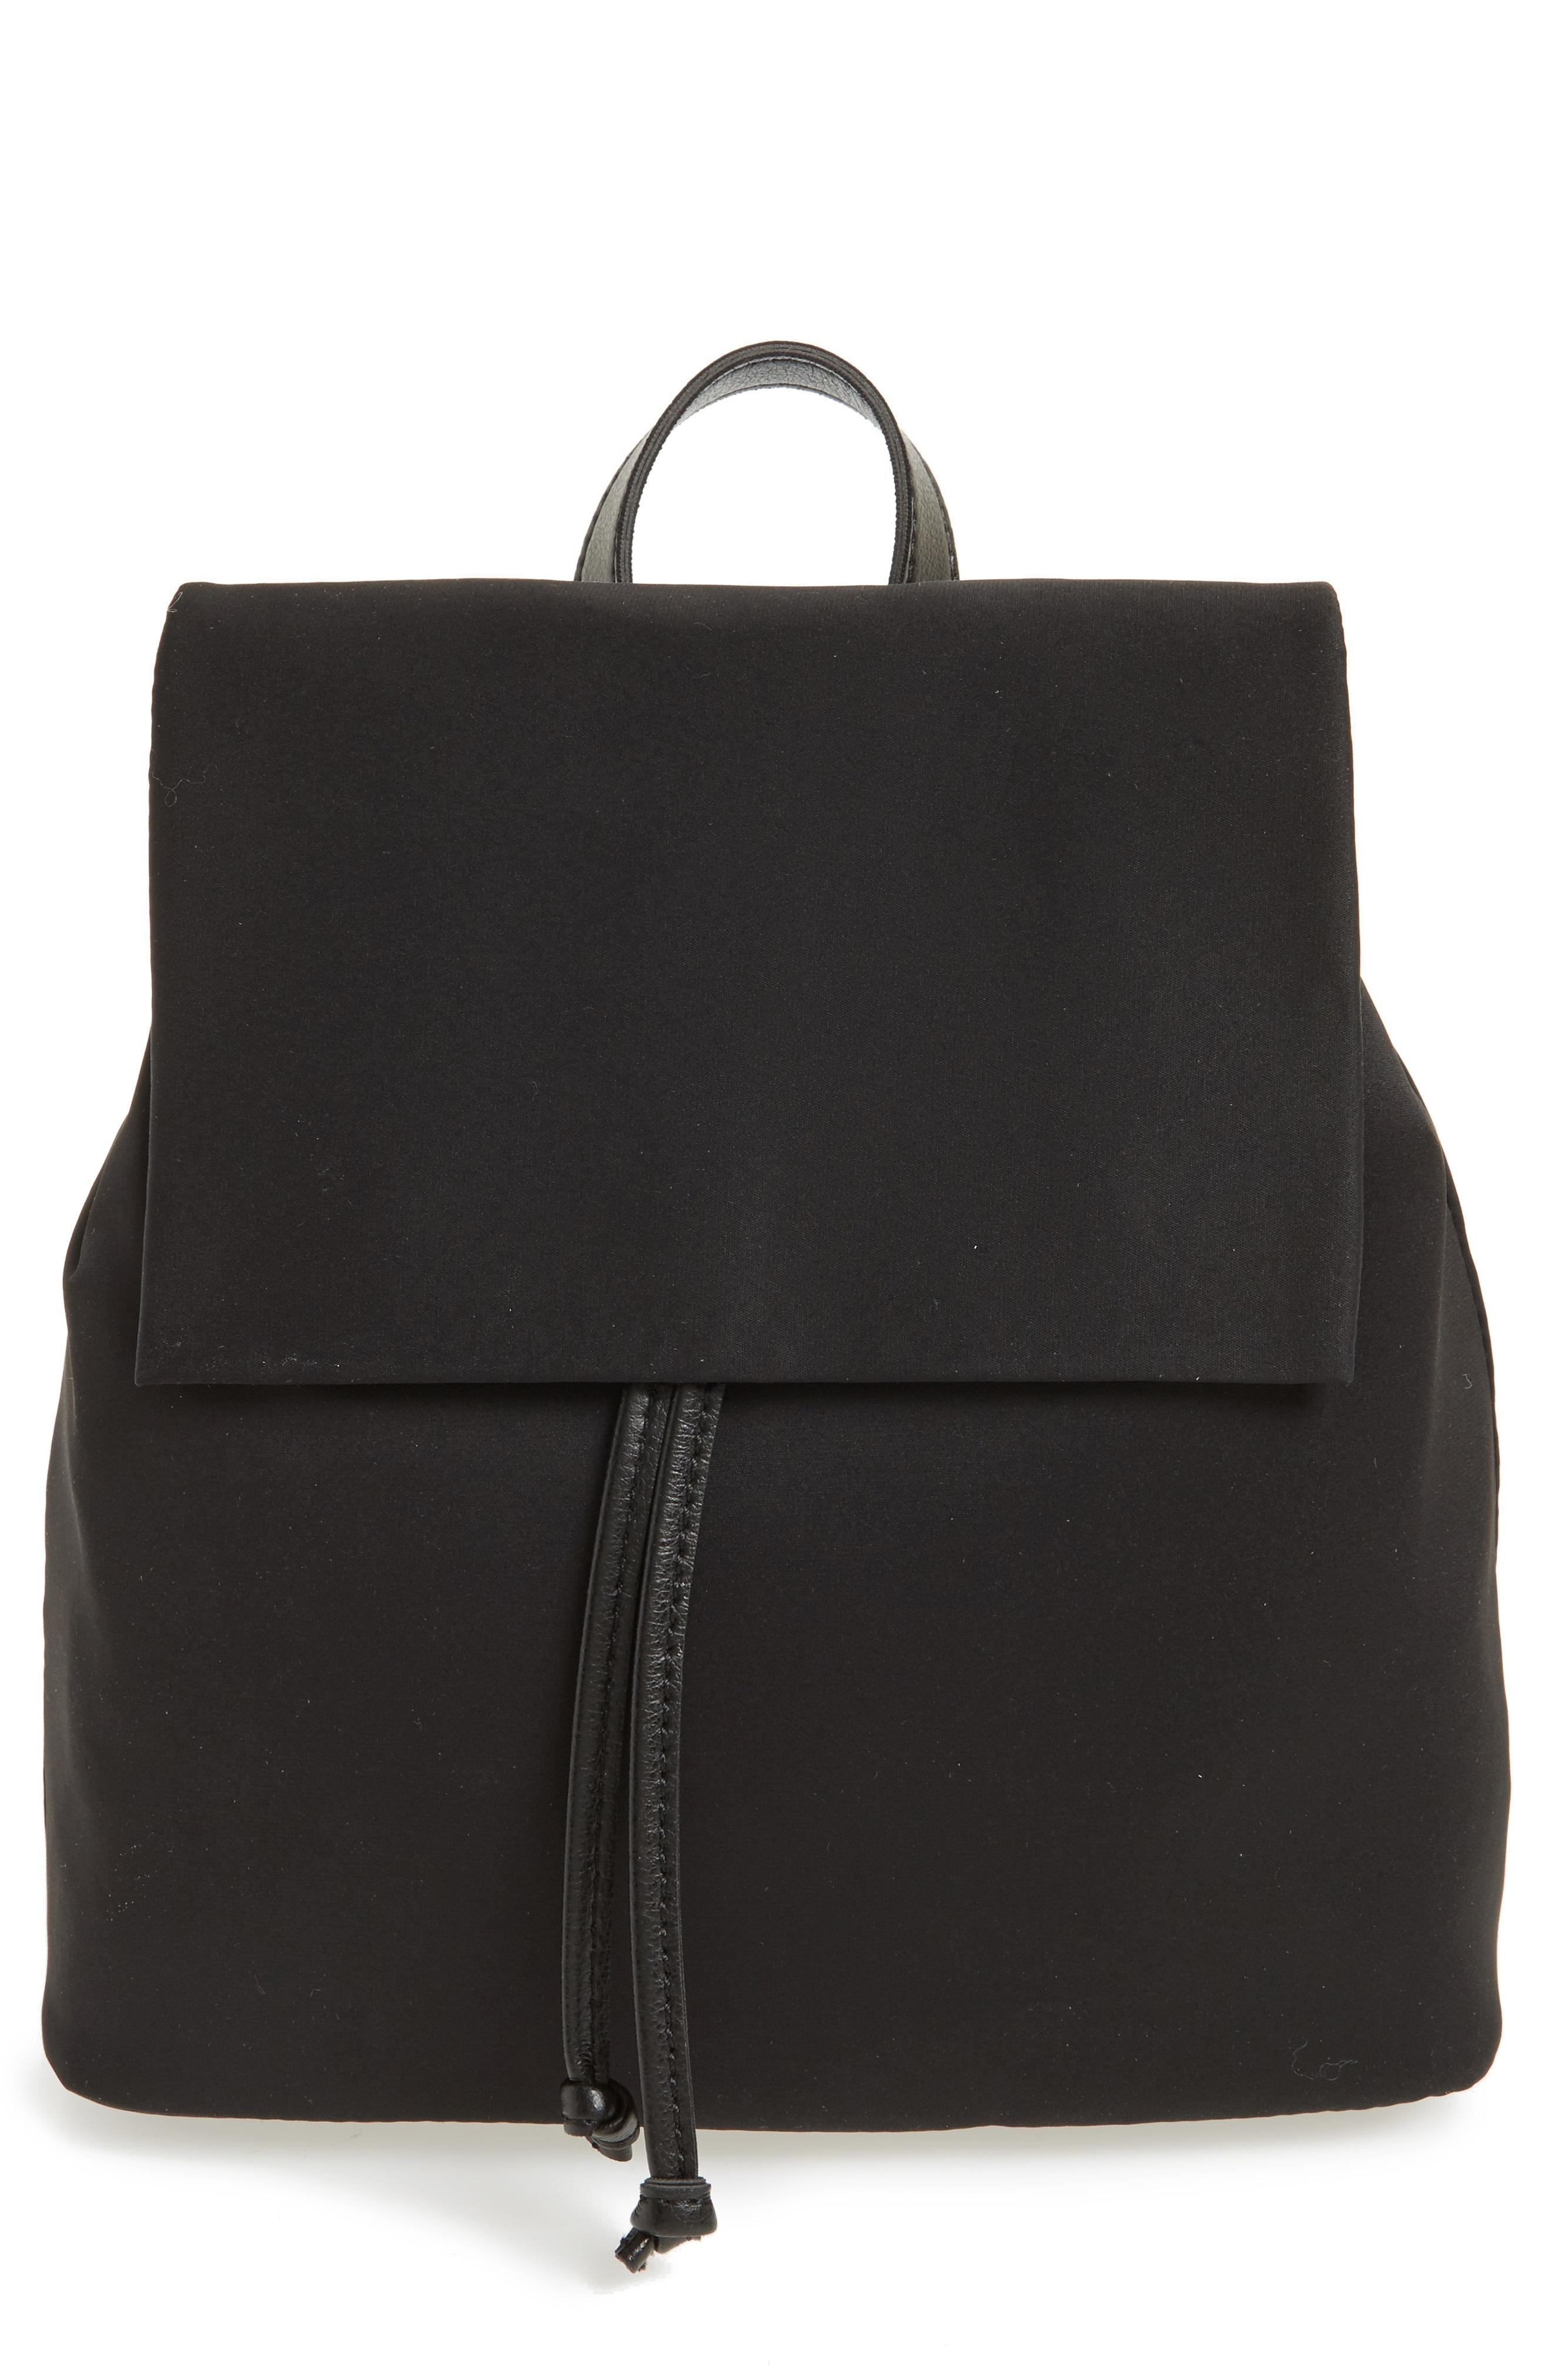 BP. Satin &amp;amp; Faux Leather Backpack from Nordstrom // Price: $49.00 // (Image: Nordstrom // Nordstrom.com)<p></p>